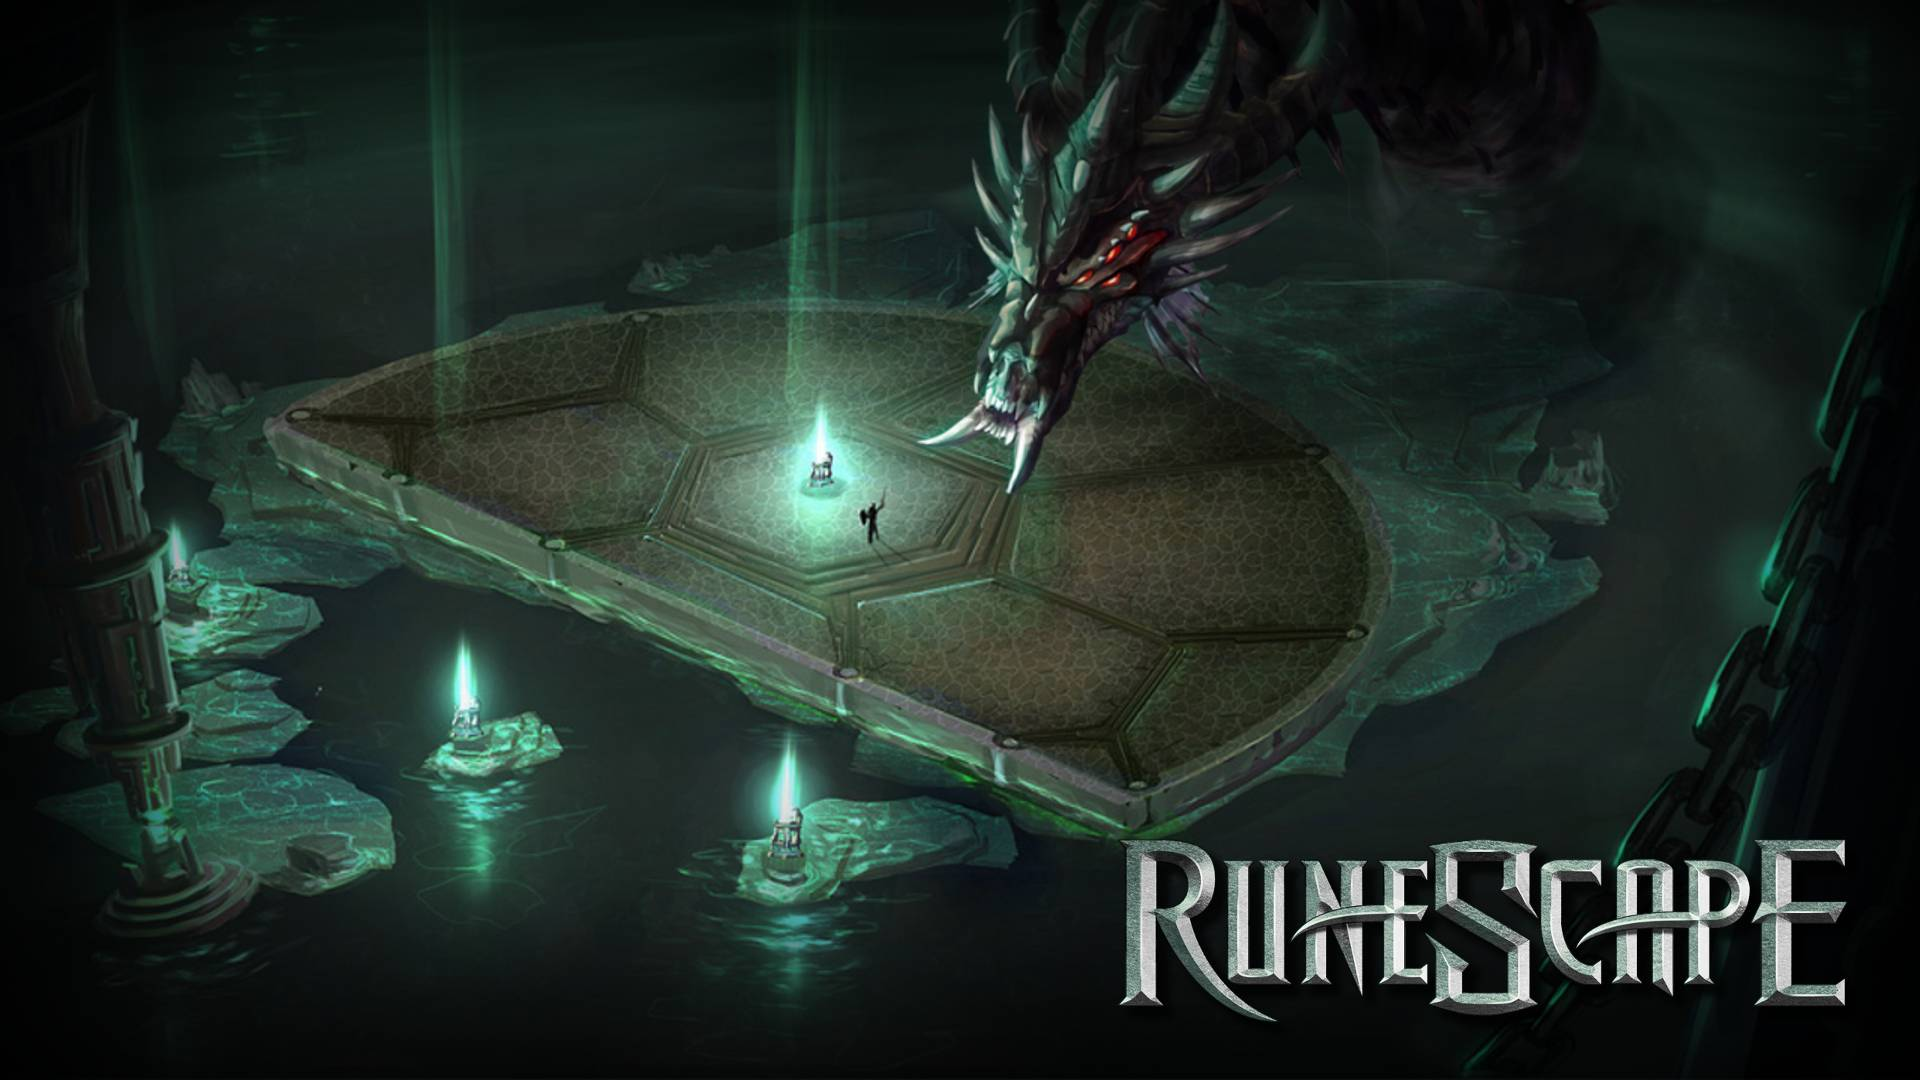 Runescape monster wallpaper voltagebd Images